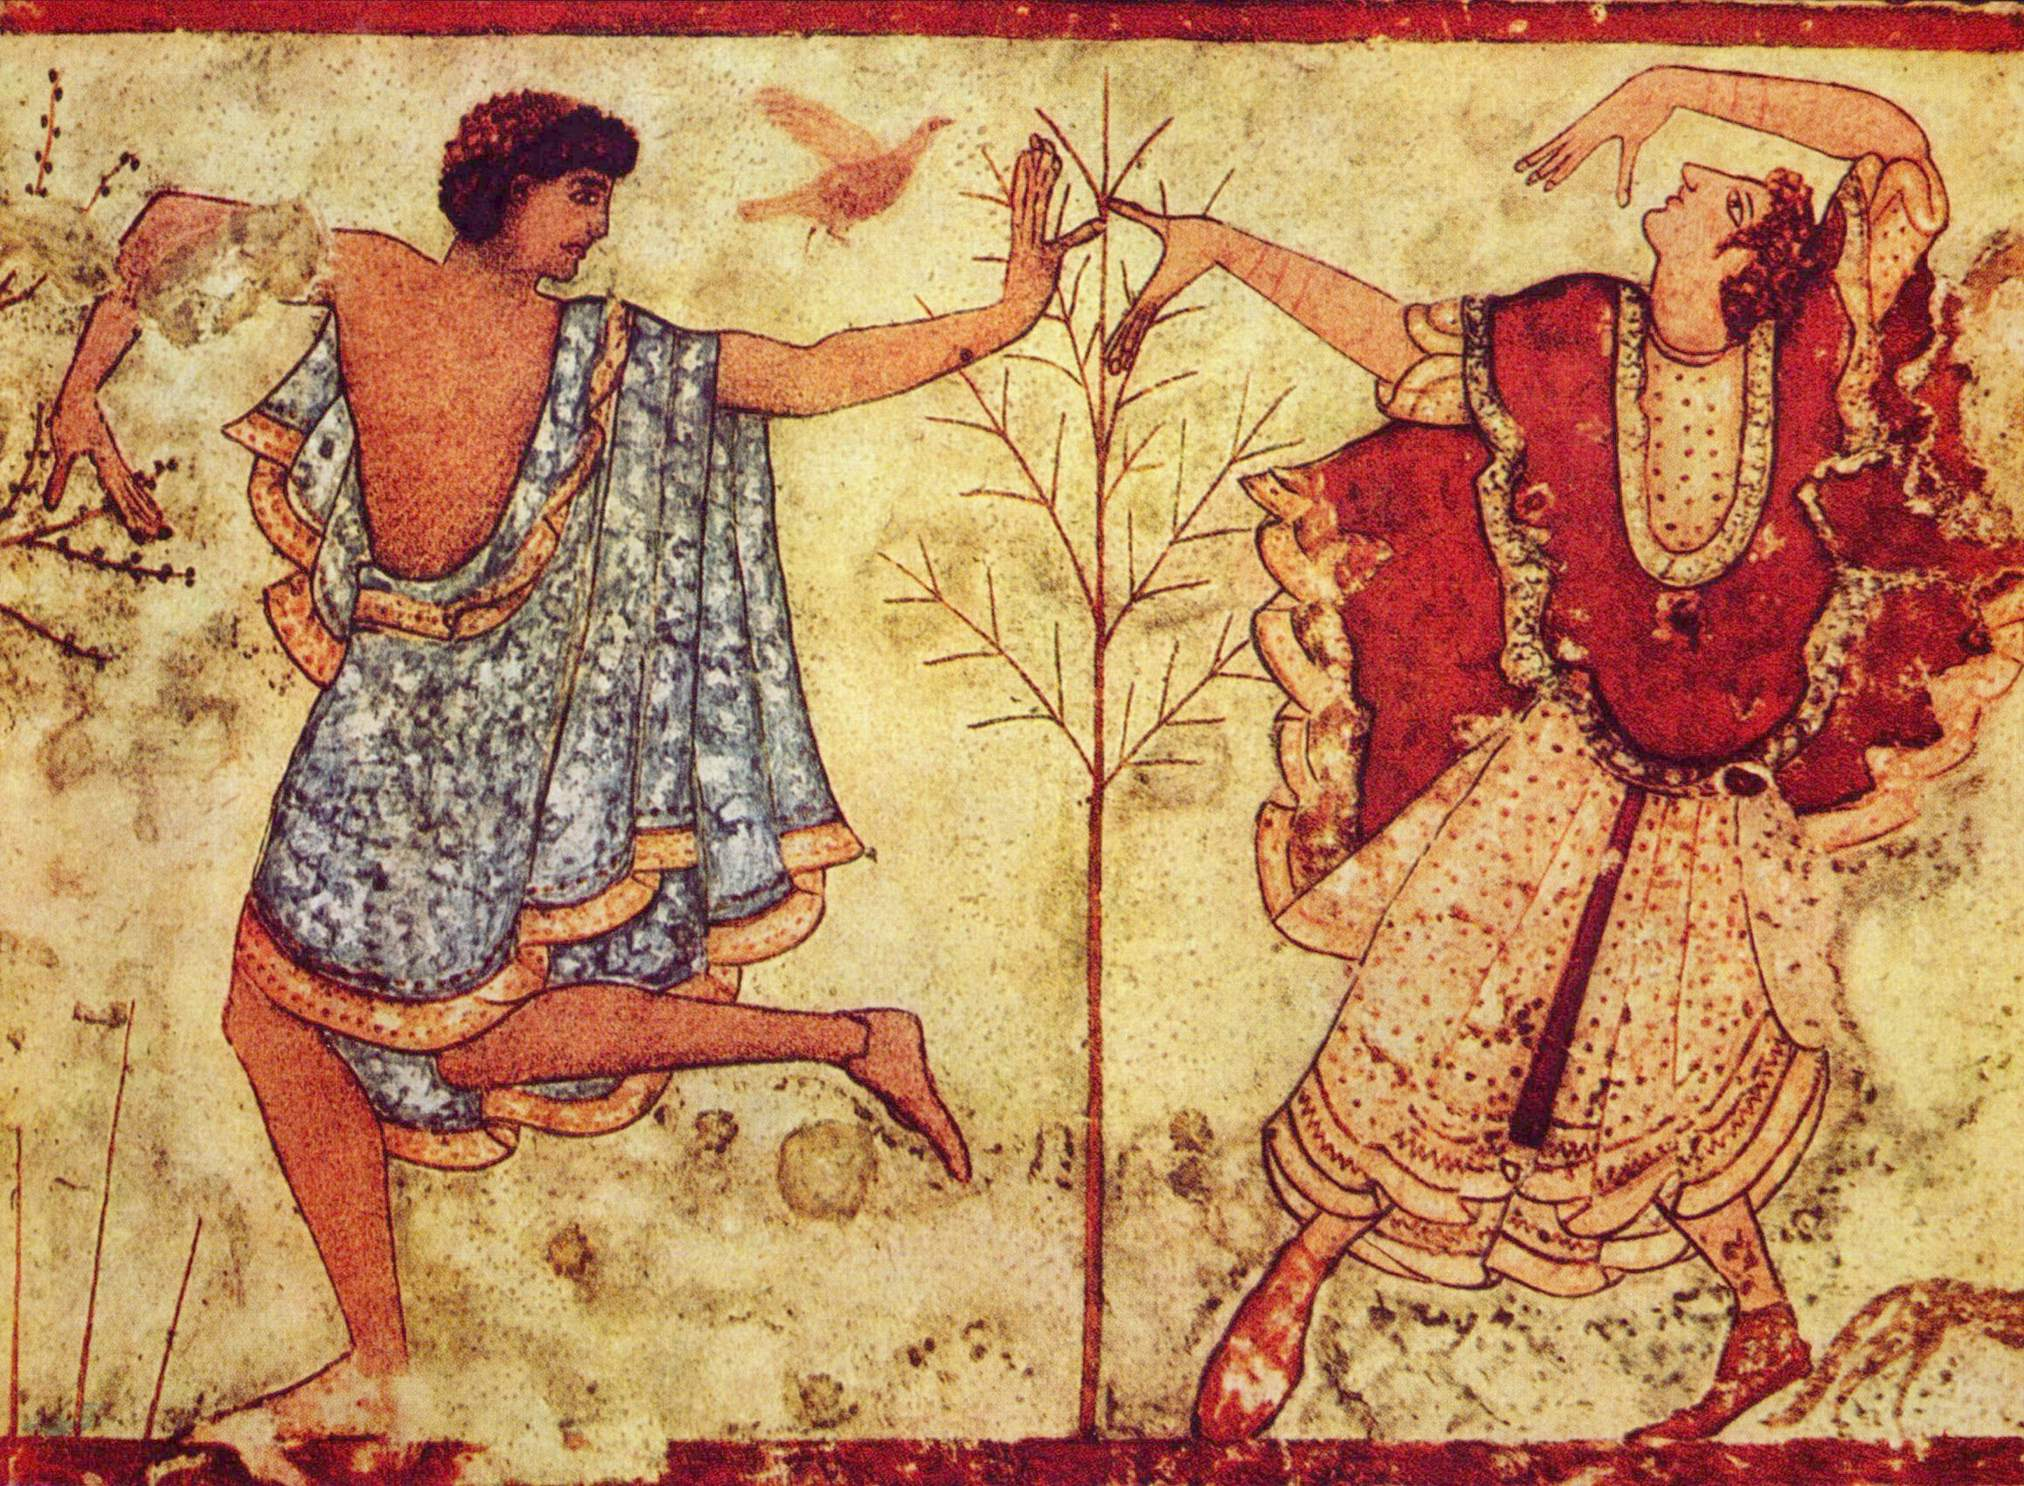 Etruscan Clothing (Article) - Ancient History Encyclopedia